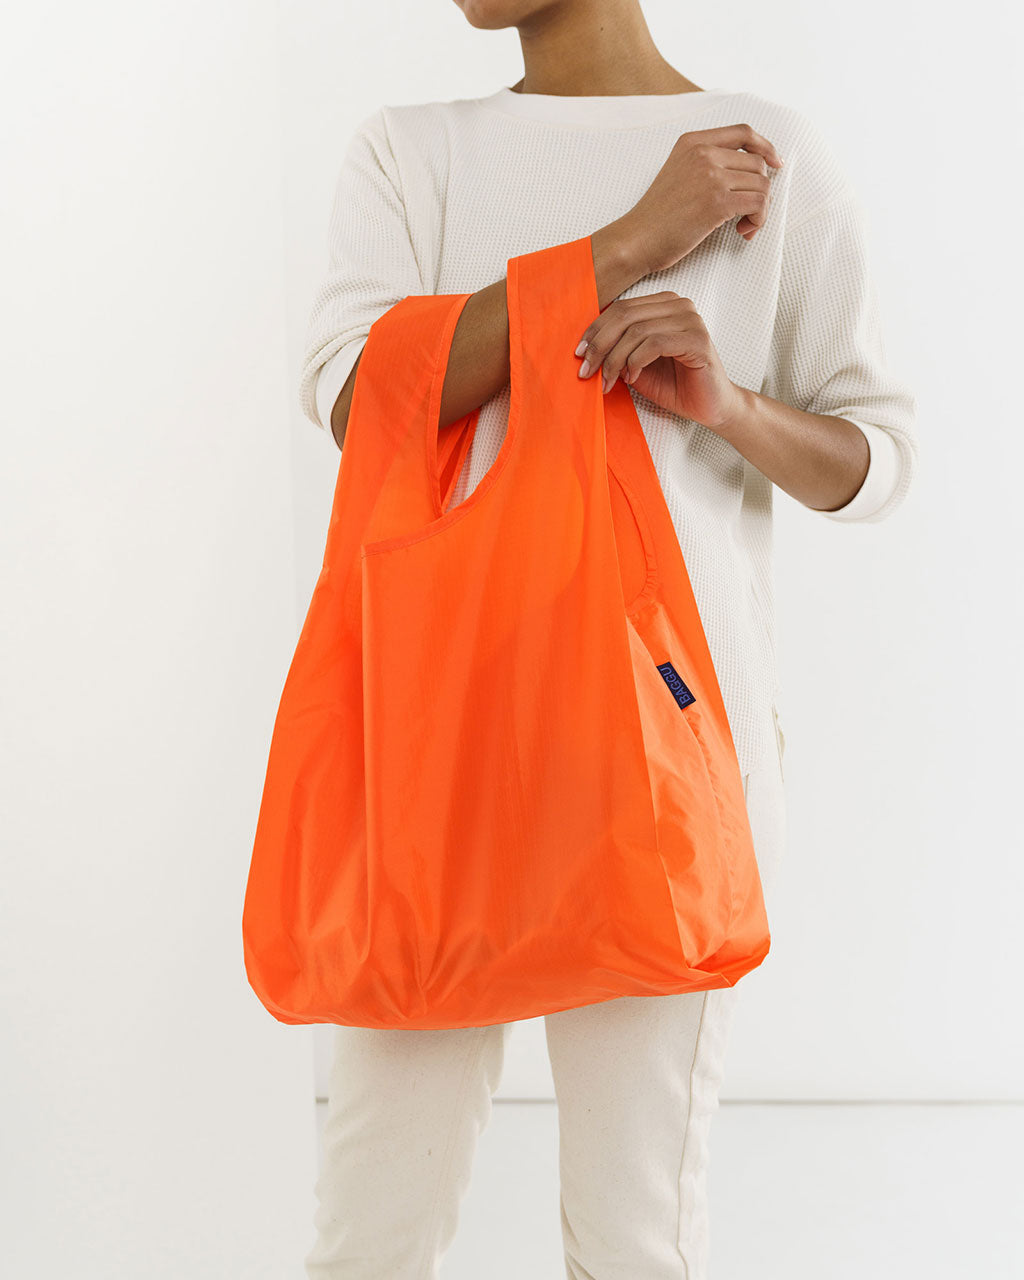 model shown holding orange baggu